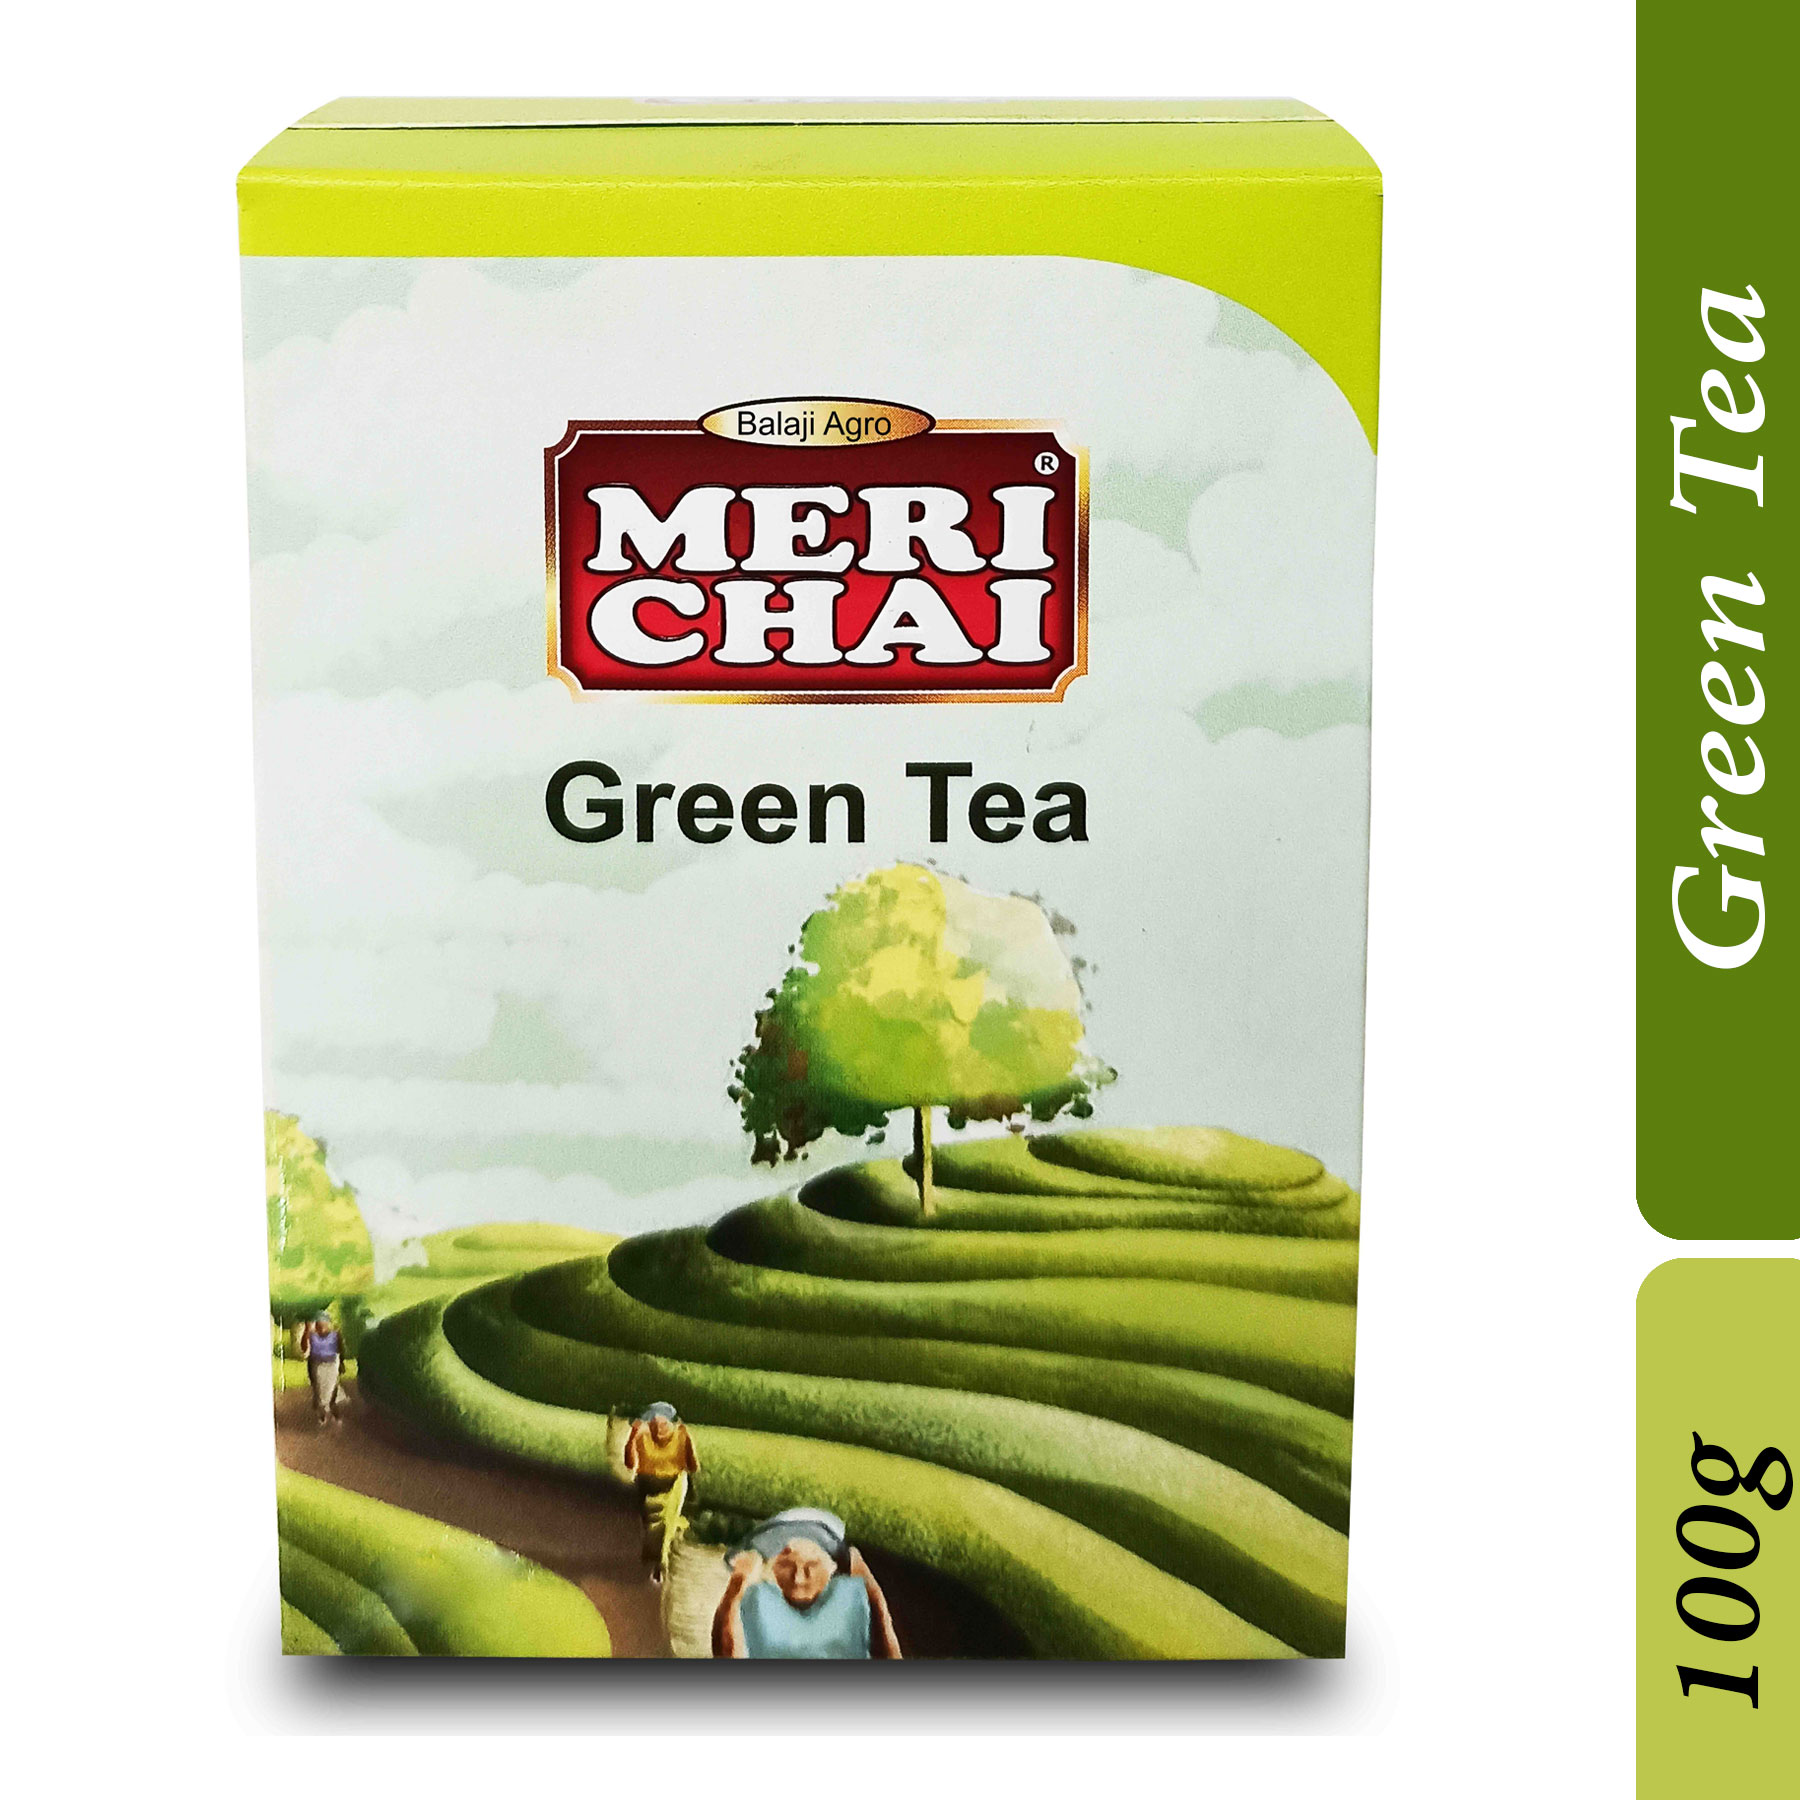 MERI CHAI Pure North Indian Green Tea